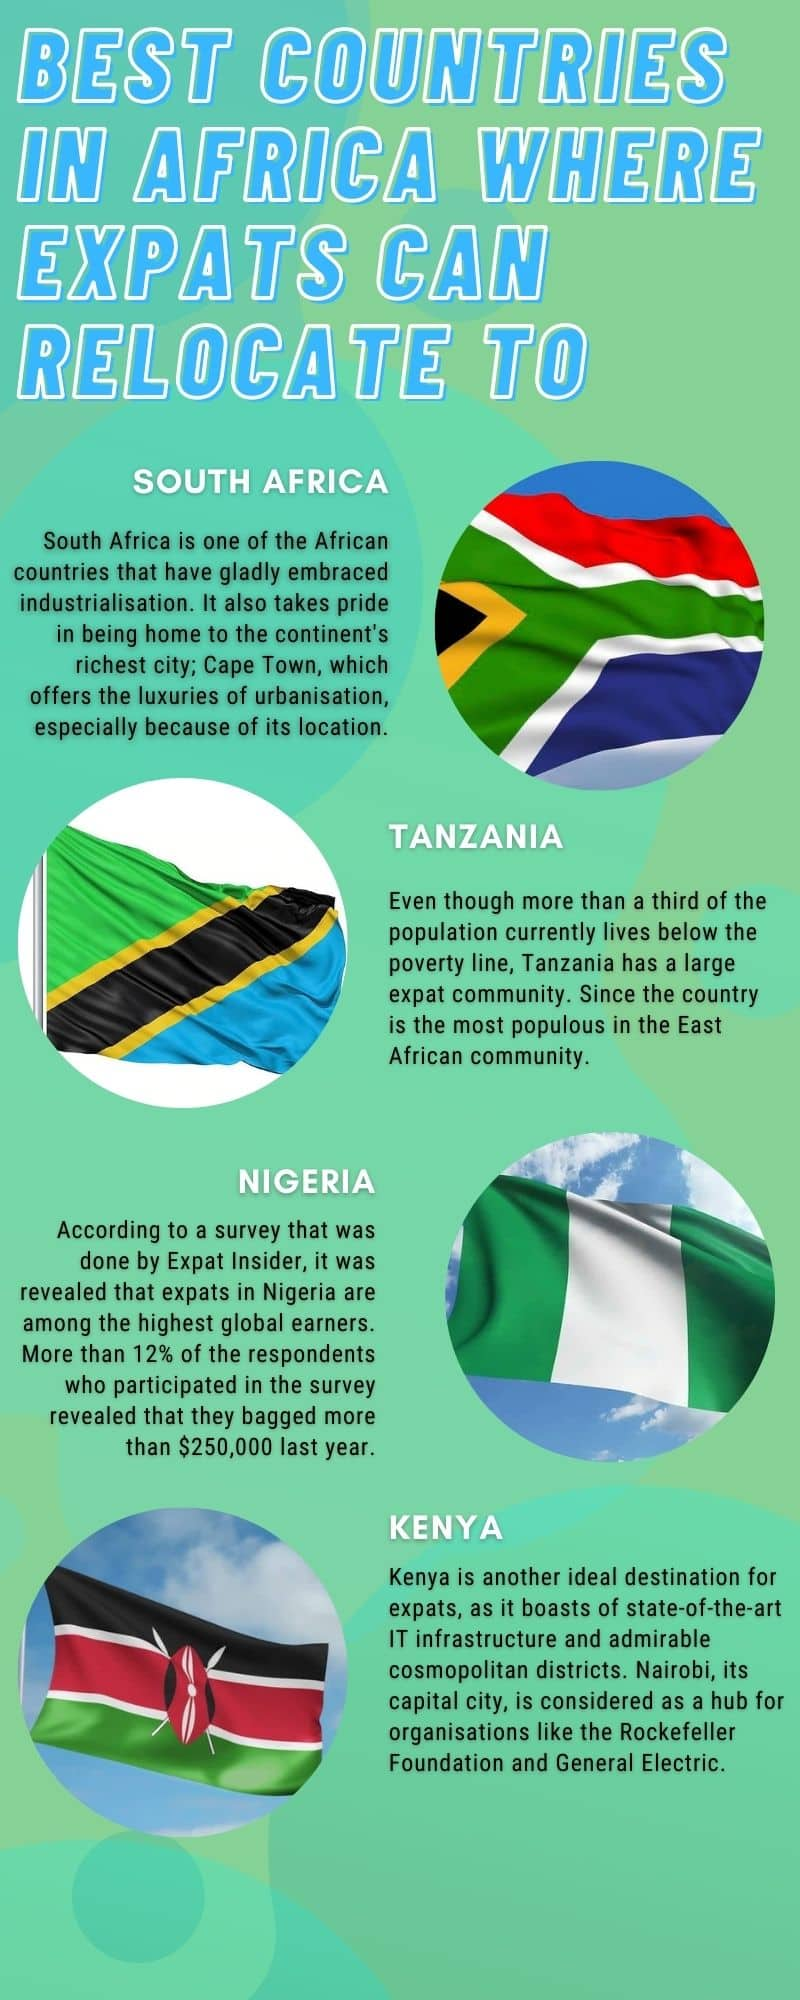 best countries in Africa where expats can relocate